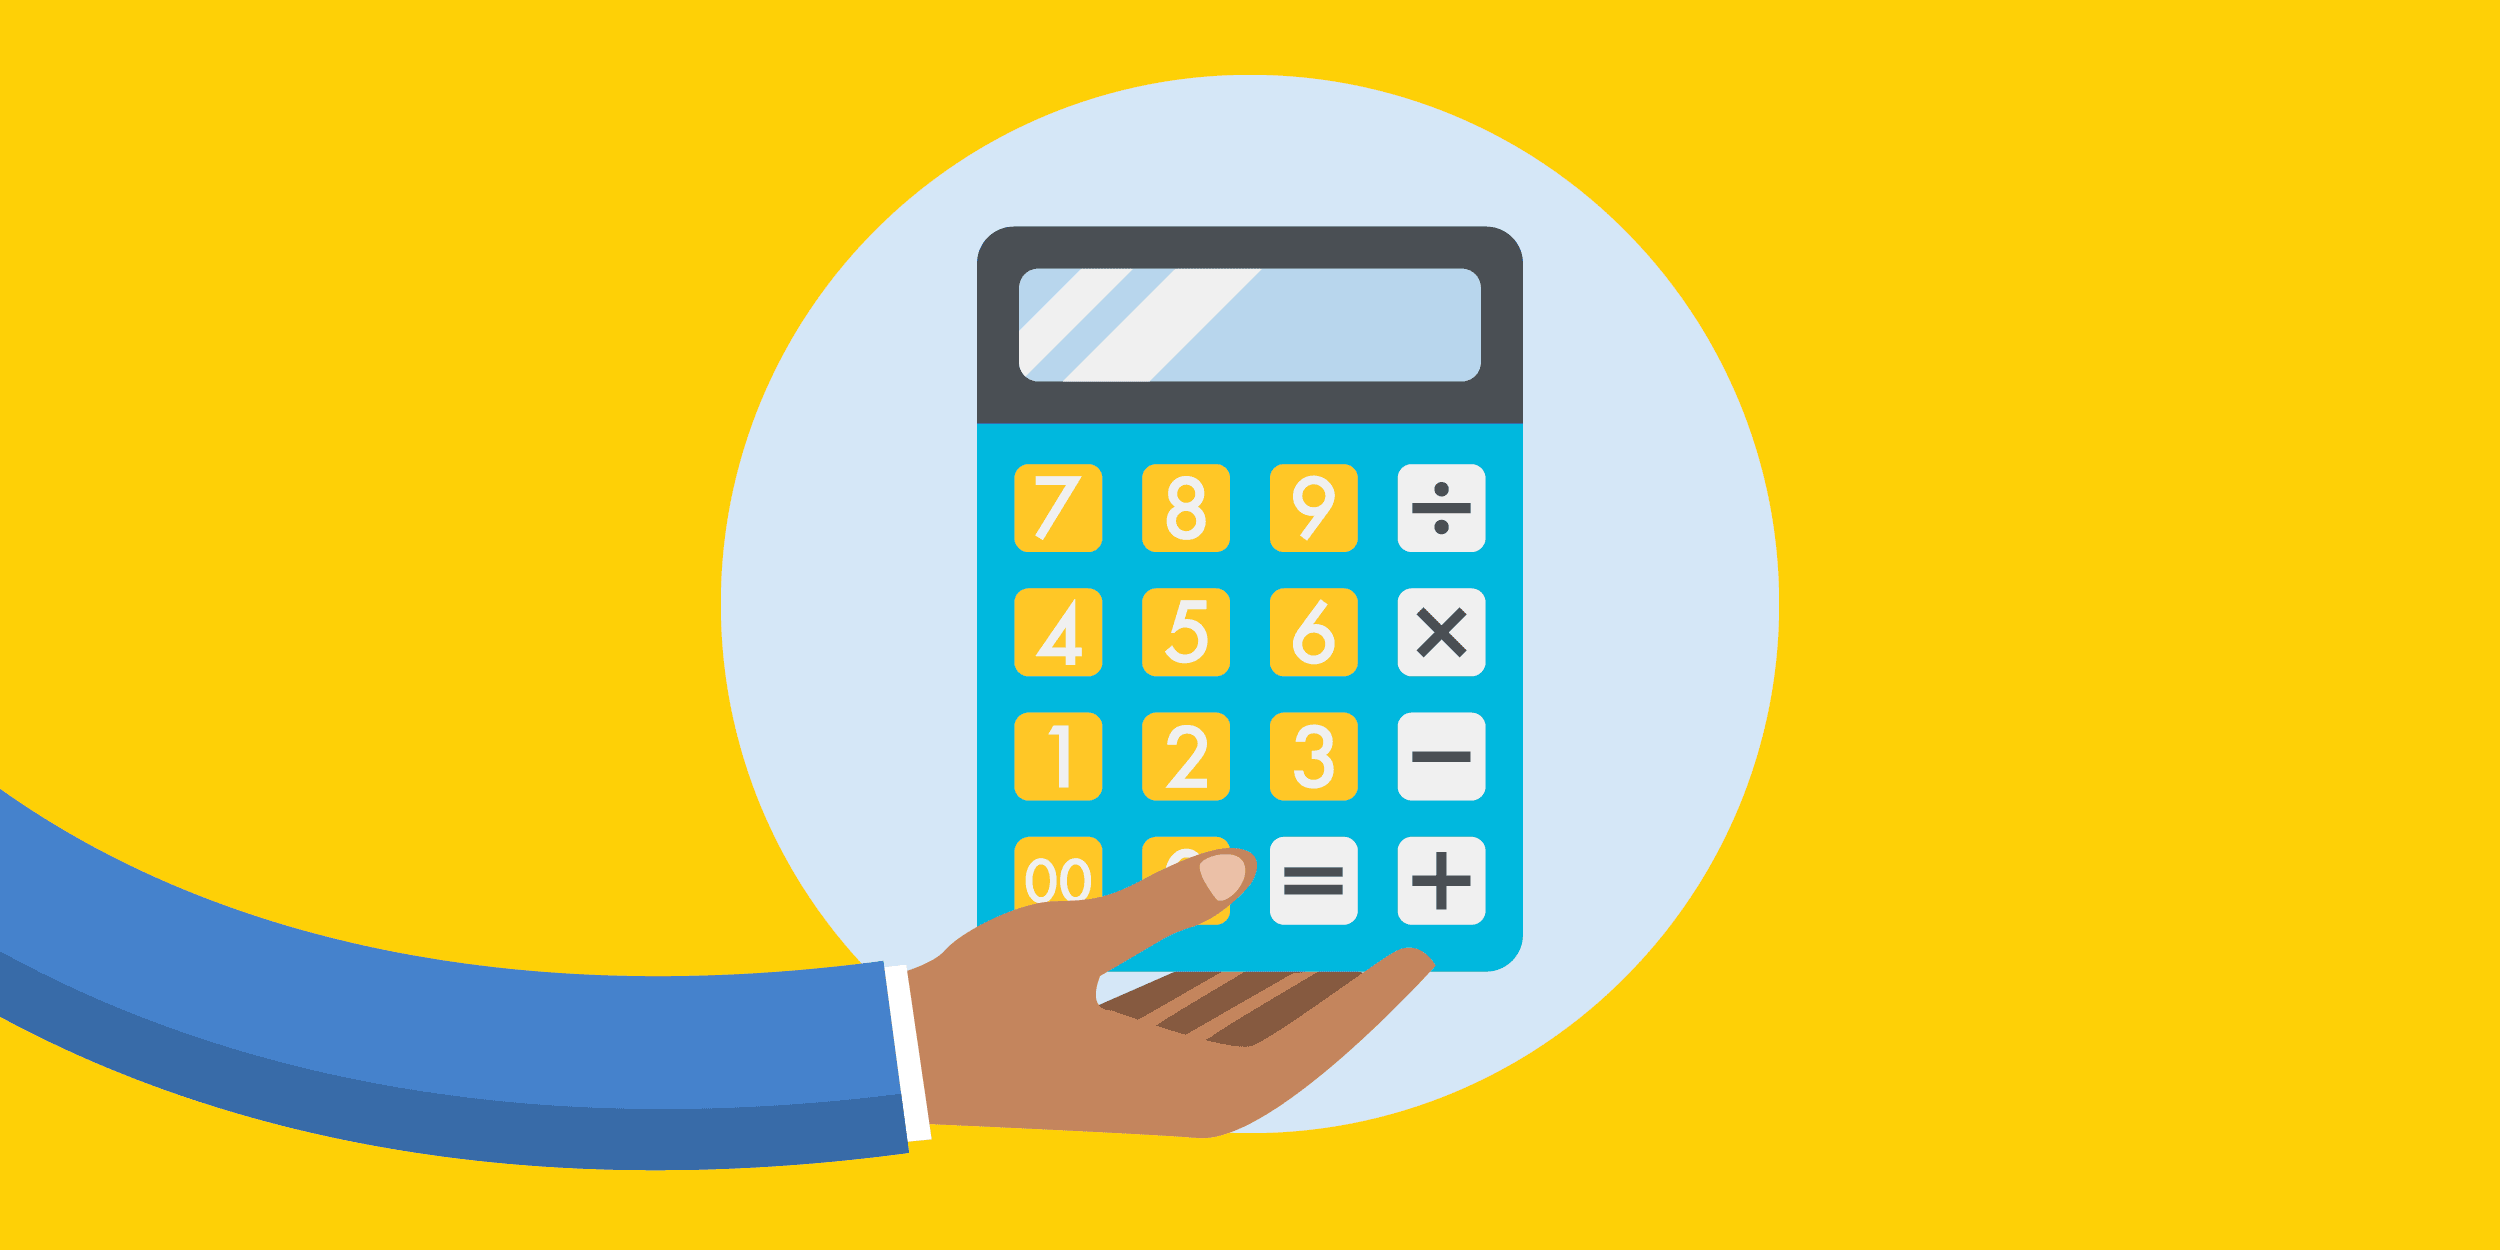 illustration of a person holding a large calculator, symbolizing nonprofit accounting and financial management